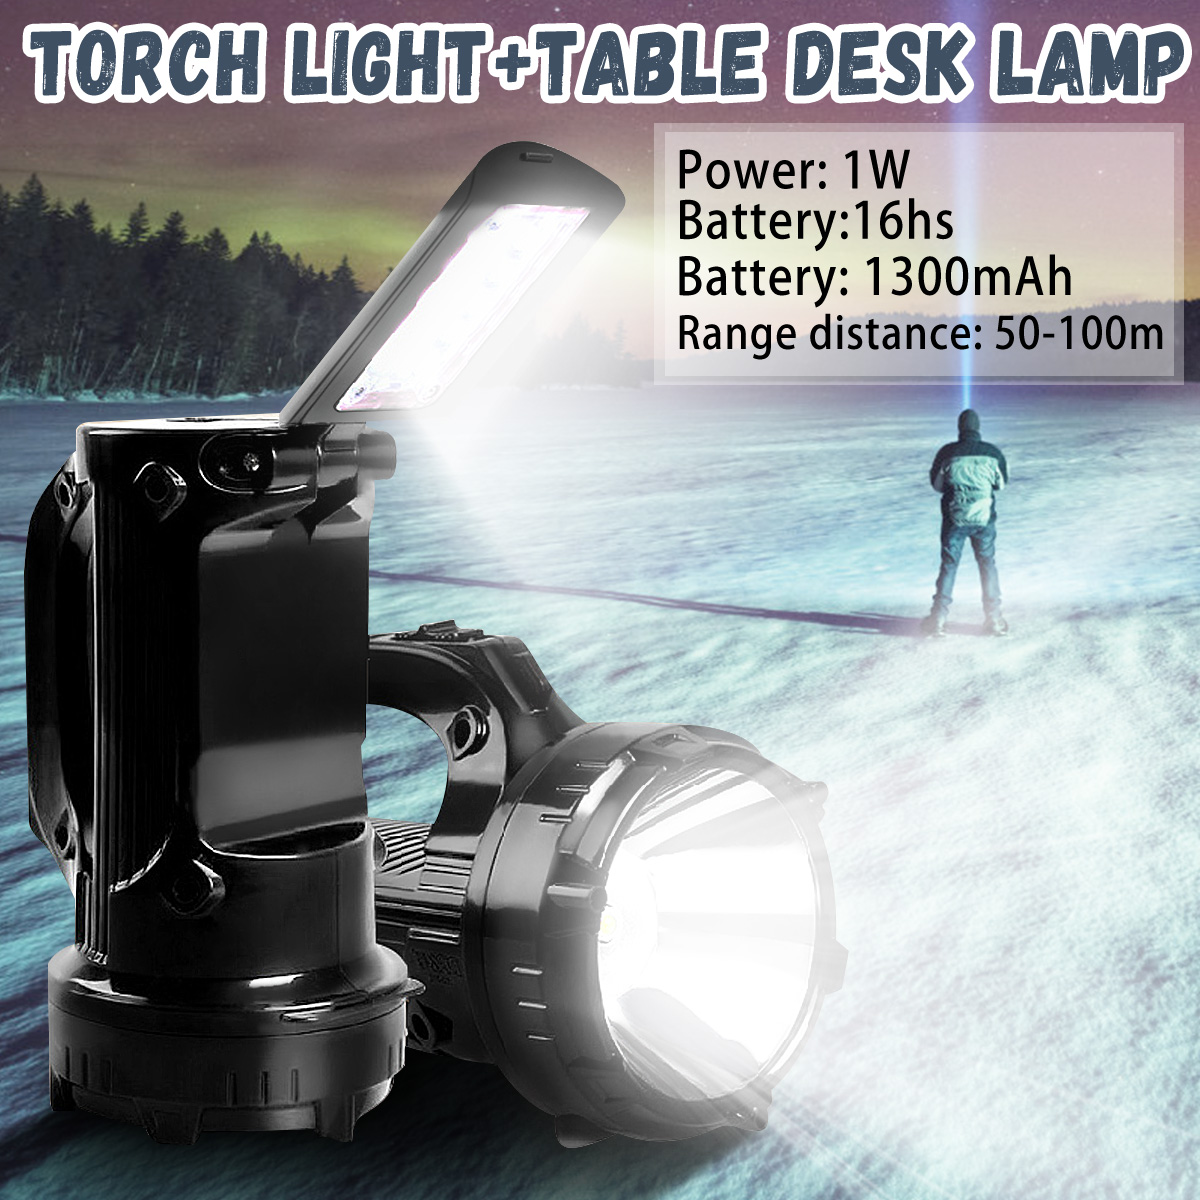 <font><b>LED</b></font> <font><b>Work</b></font> <font><b>Light</b></font> Torch Rechargeable Dual <font><b>Led</b></font> Portable Spotlight 1W 1300mAh 50-100m 8/<font><b>16</b></font>/10hs Home-use Flashlight Table Lamp image